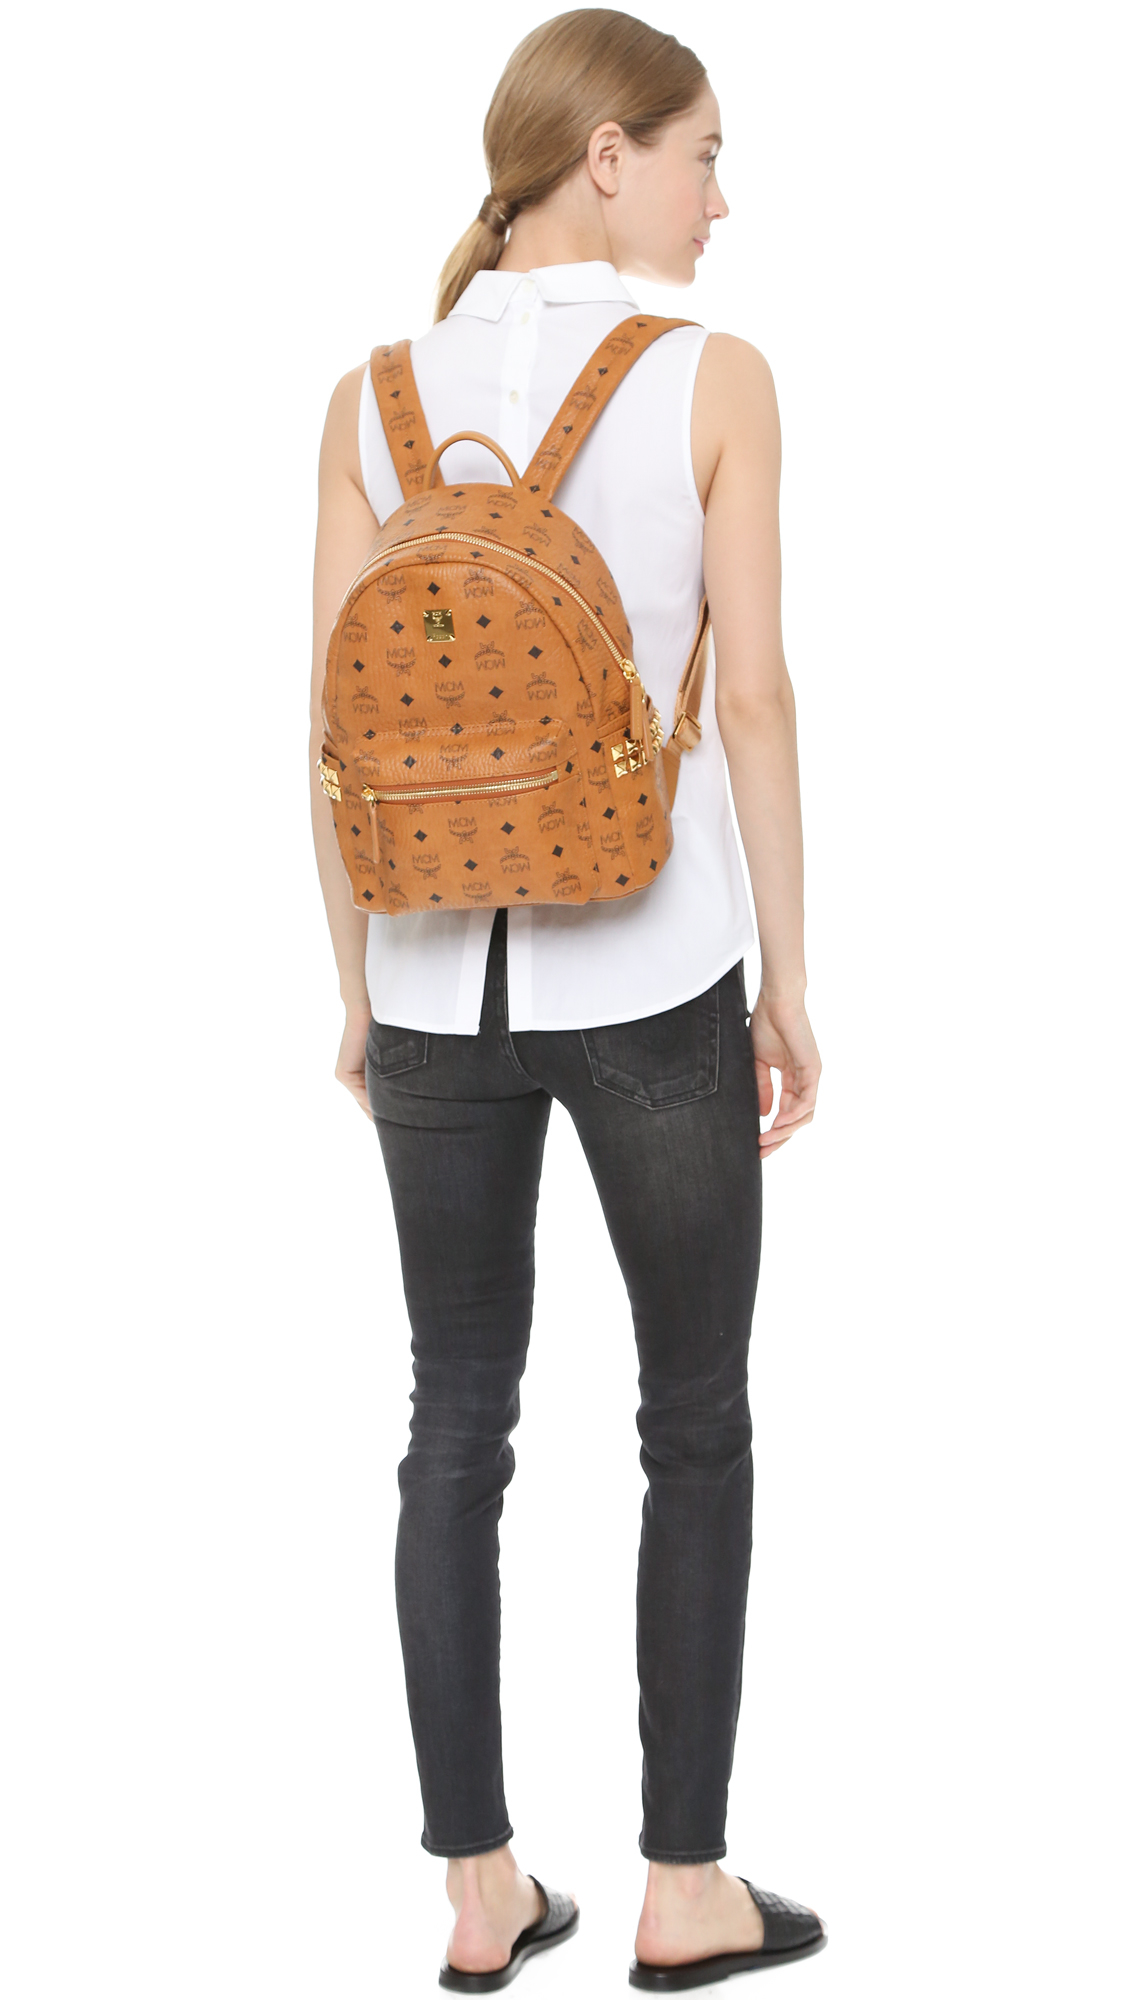 9e1e5d426f0a3 MCM Side Stud Small Stark Backpack - Cognac in Brown - Lyst